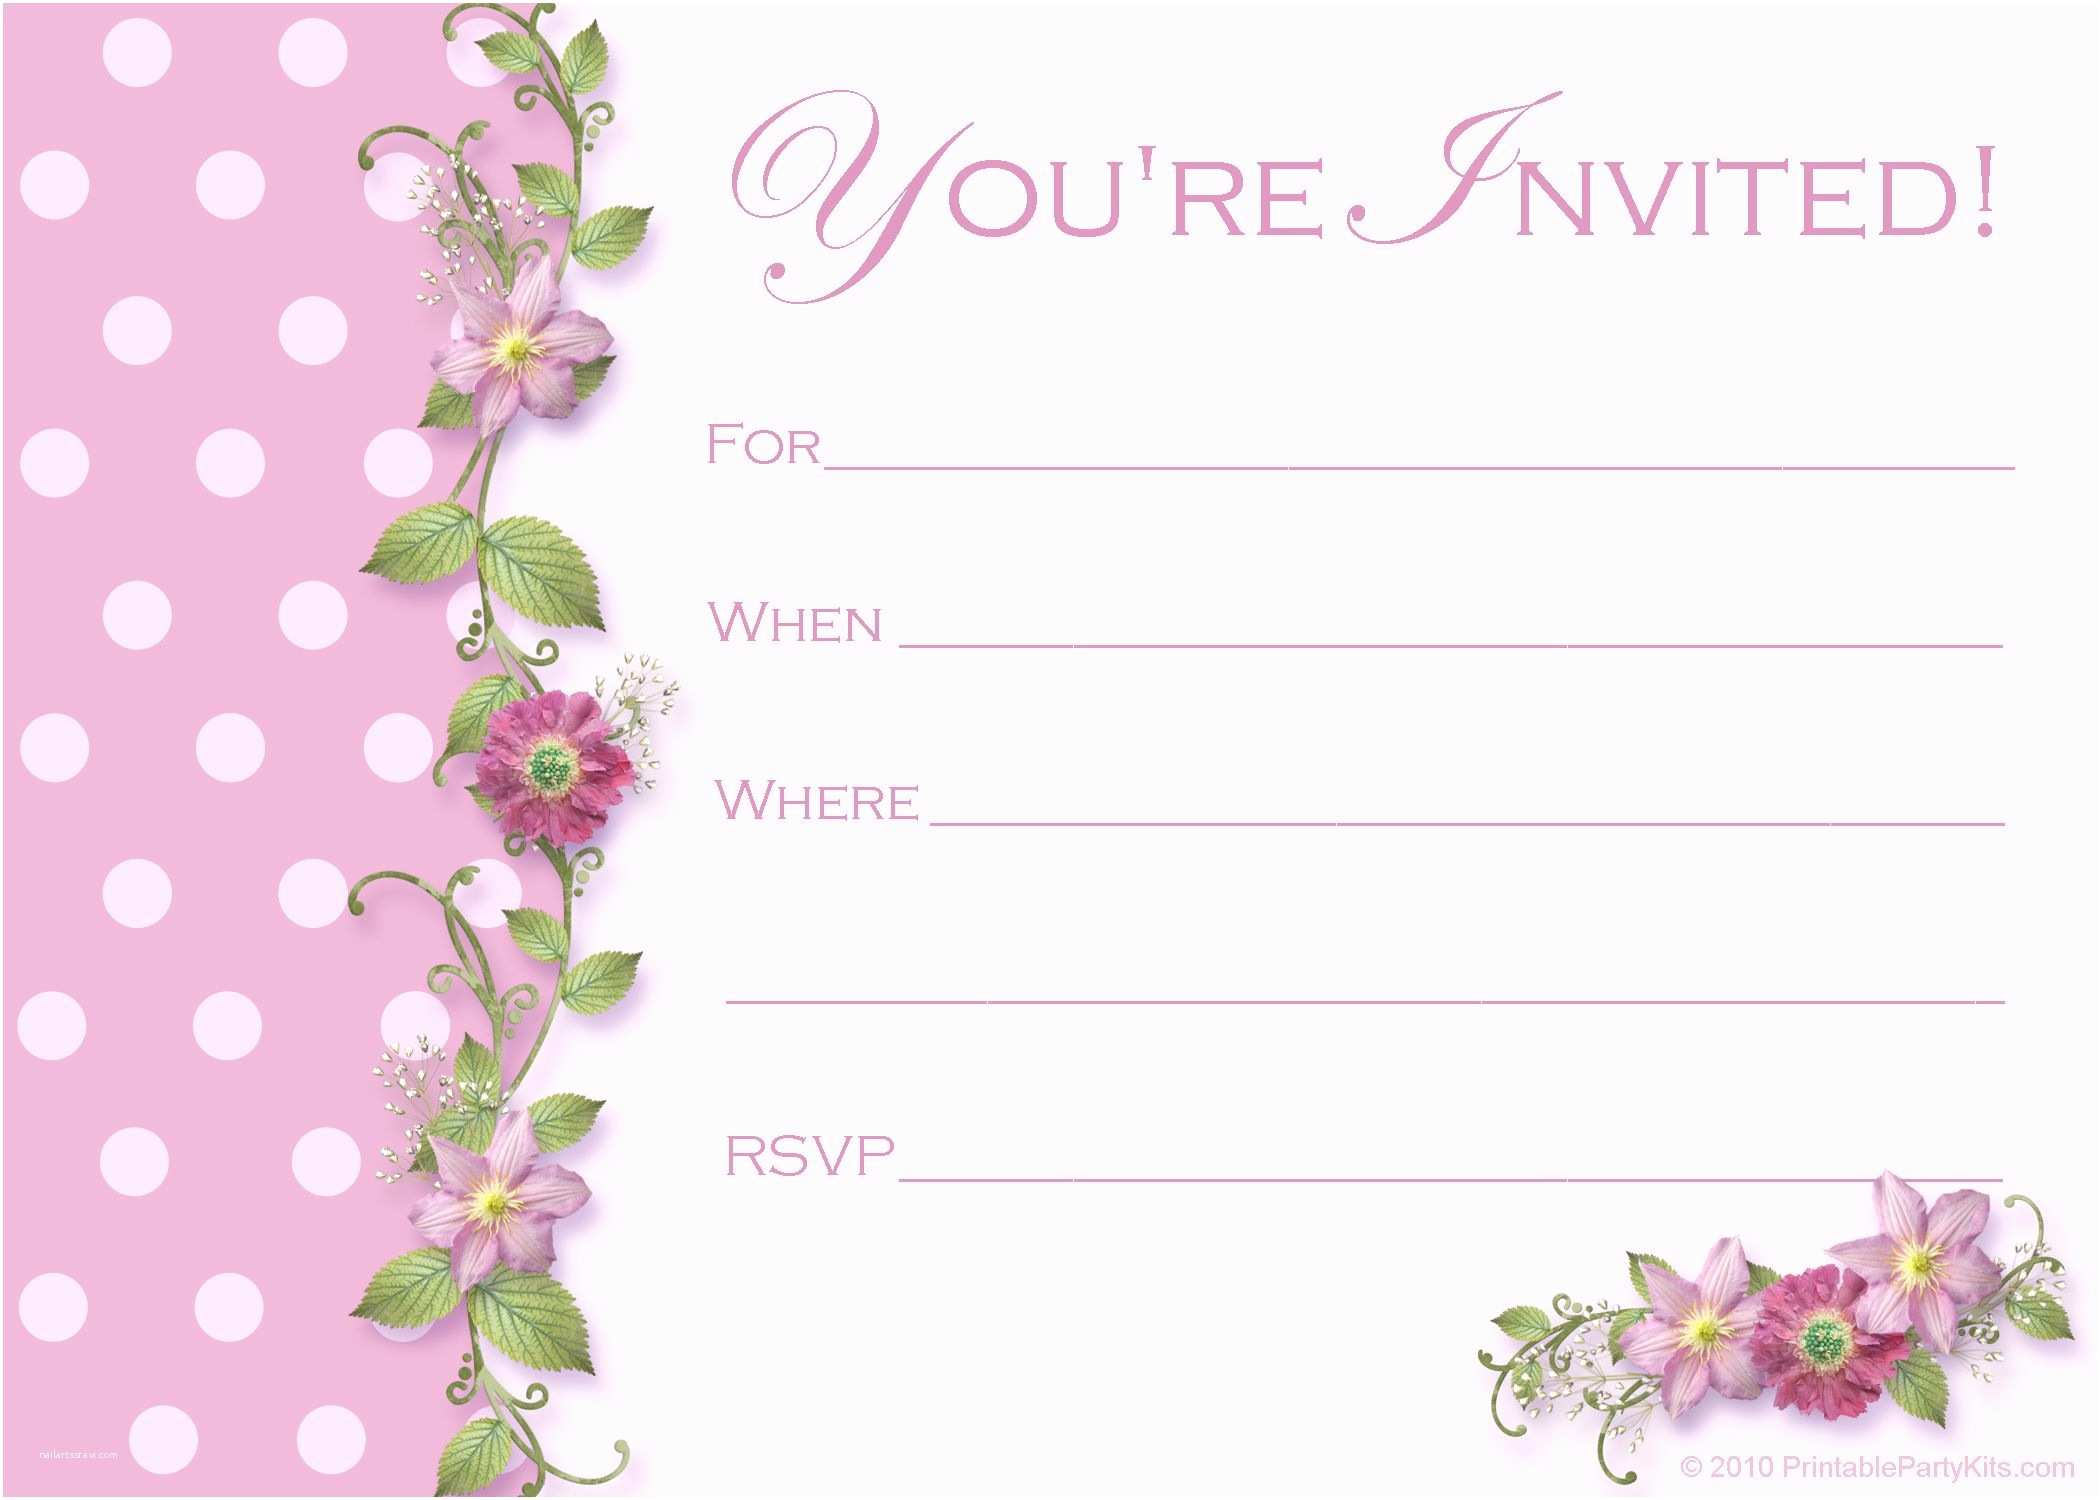 Girl Birthday Party Invitations Birthday Invites for A Girl Invitations